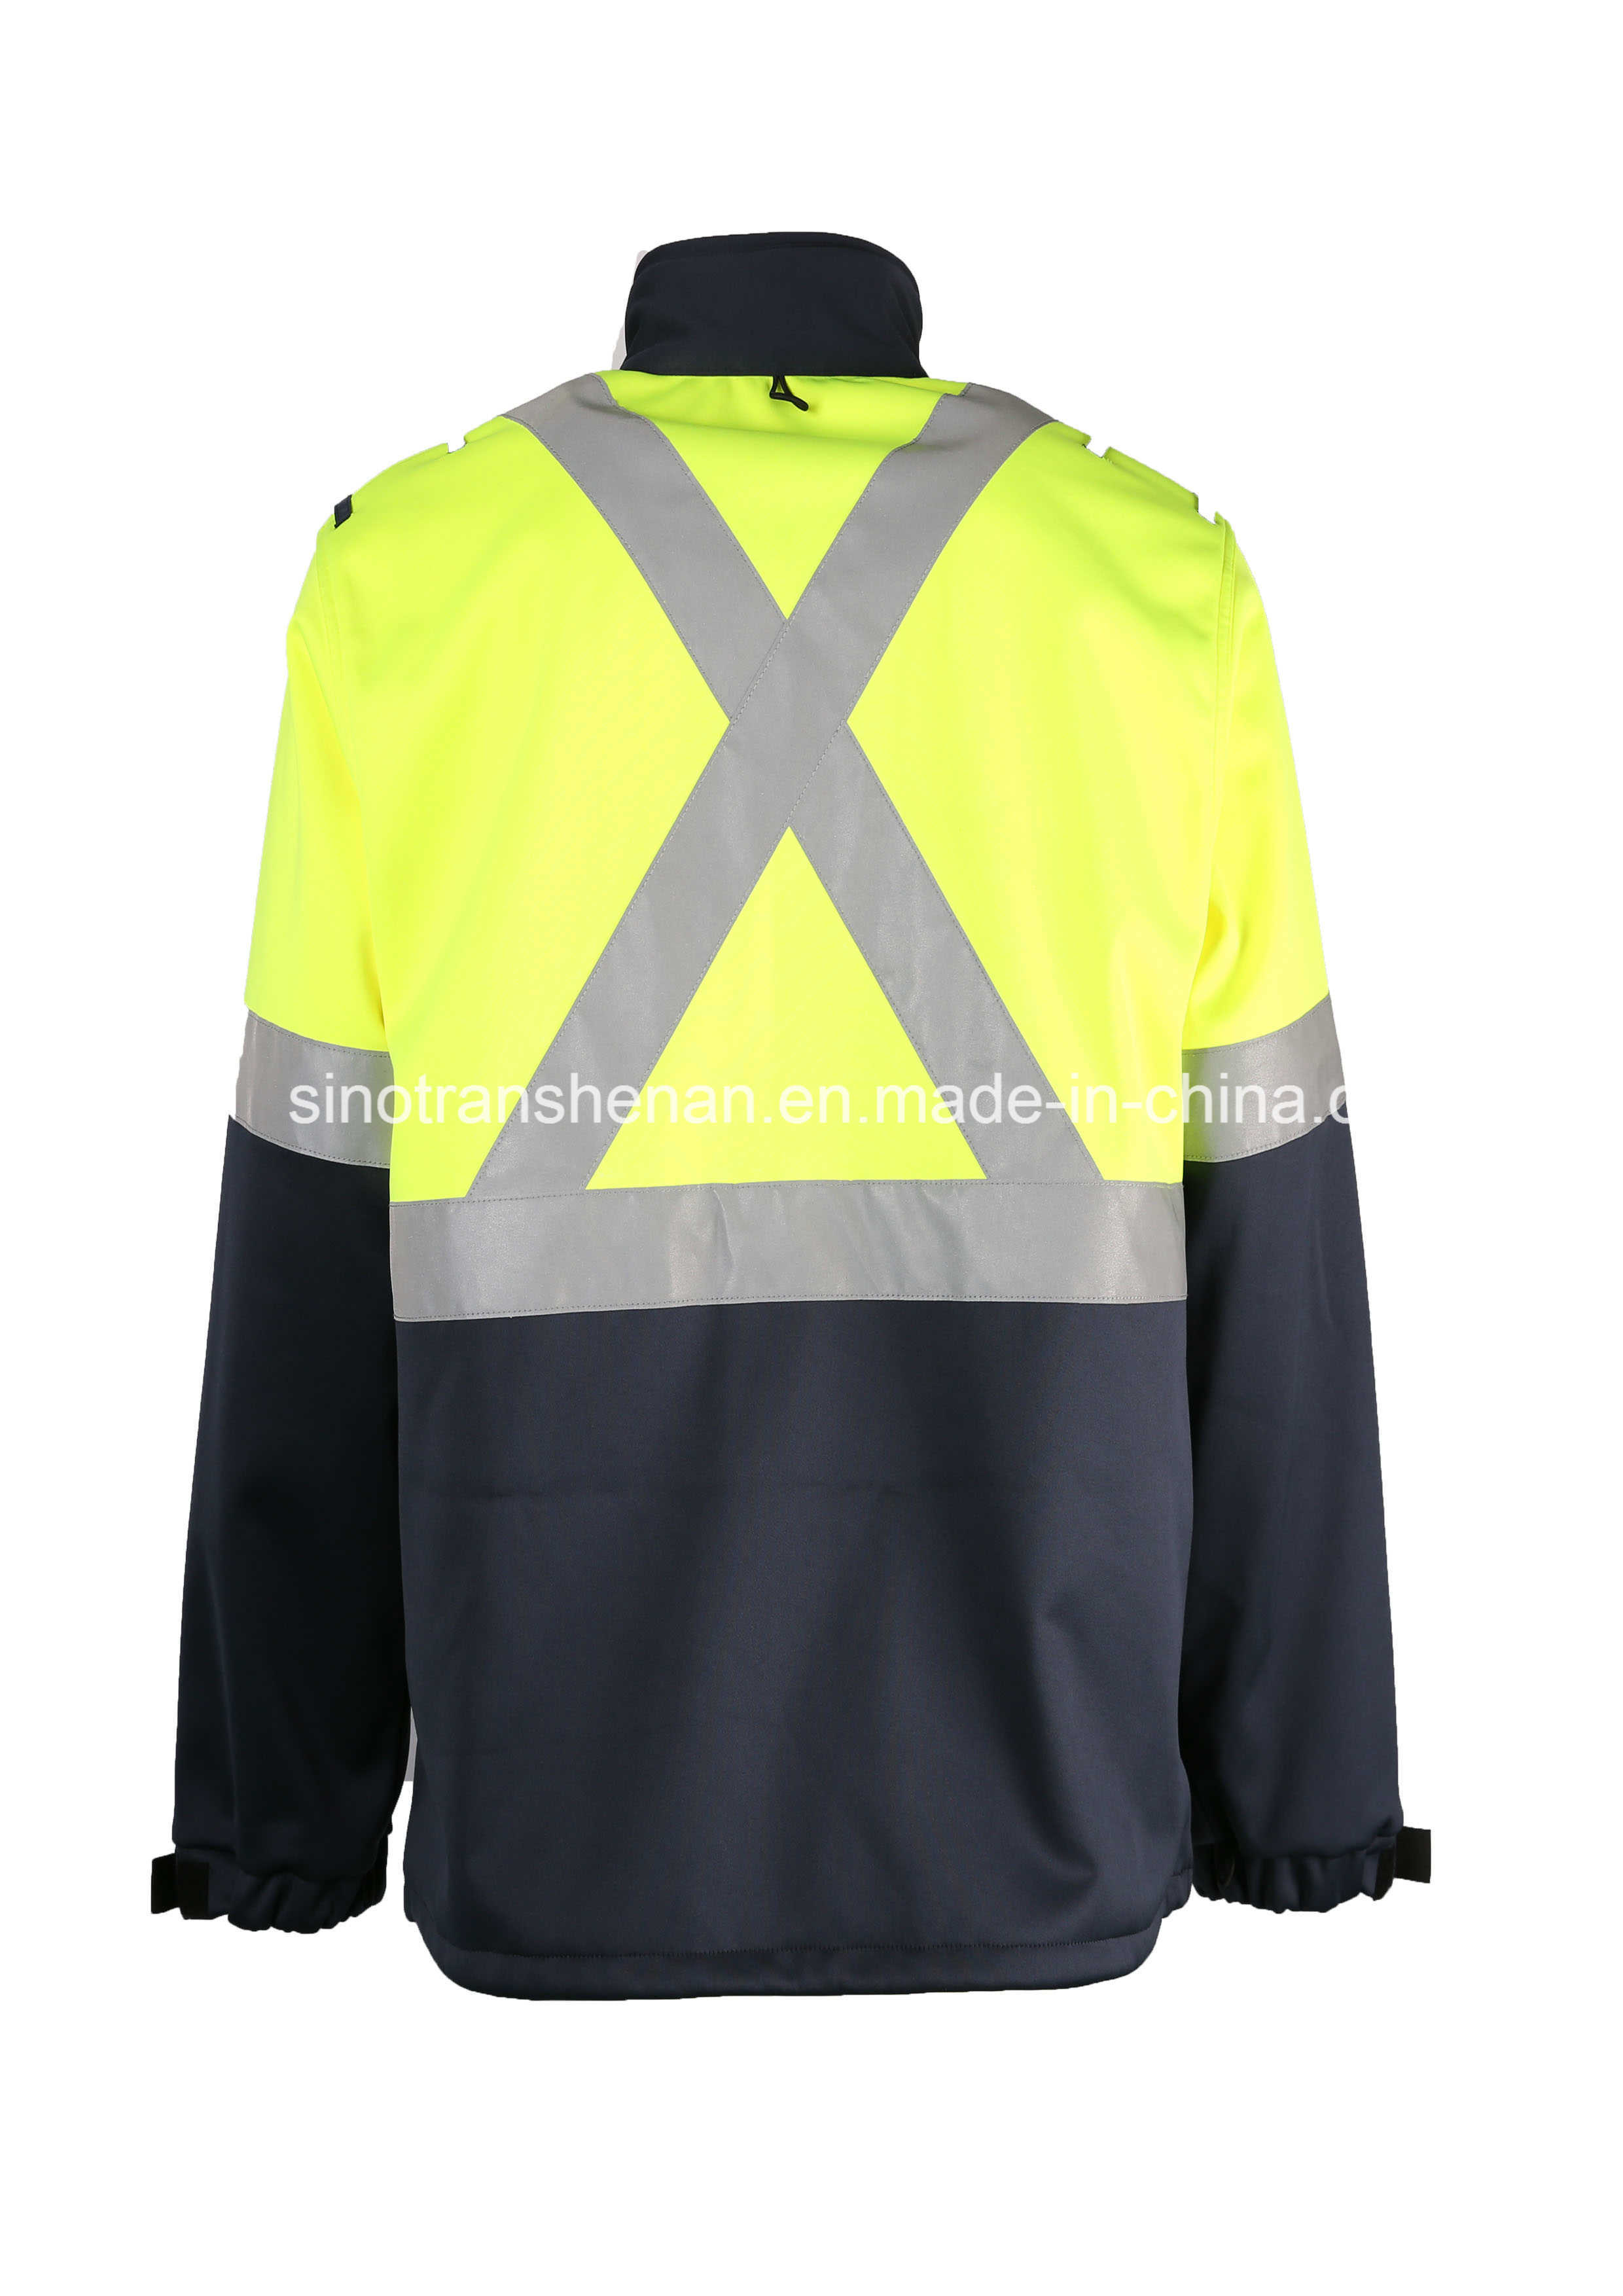 100% Polyester Soft Shell Coat Waterproof Hi Vis